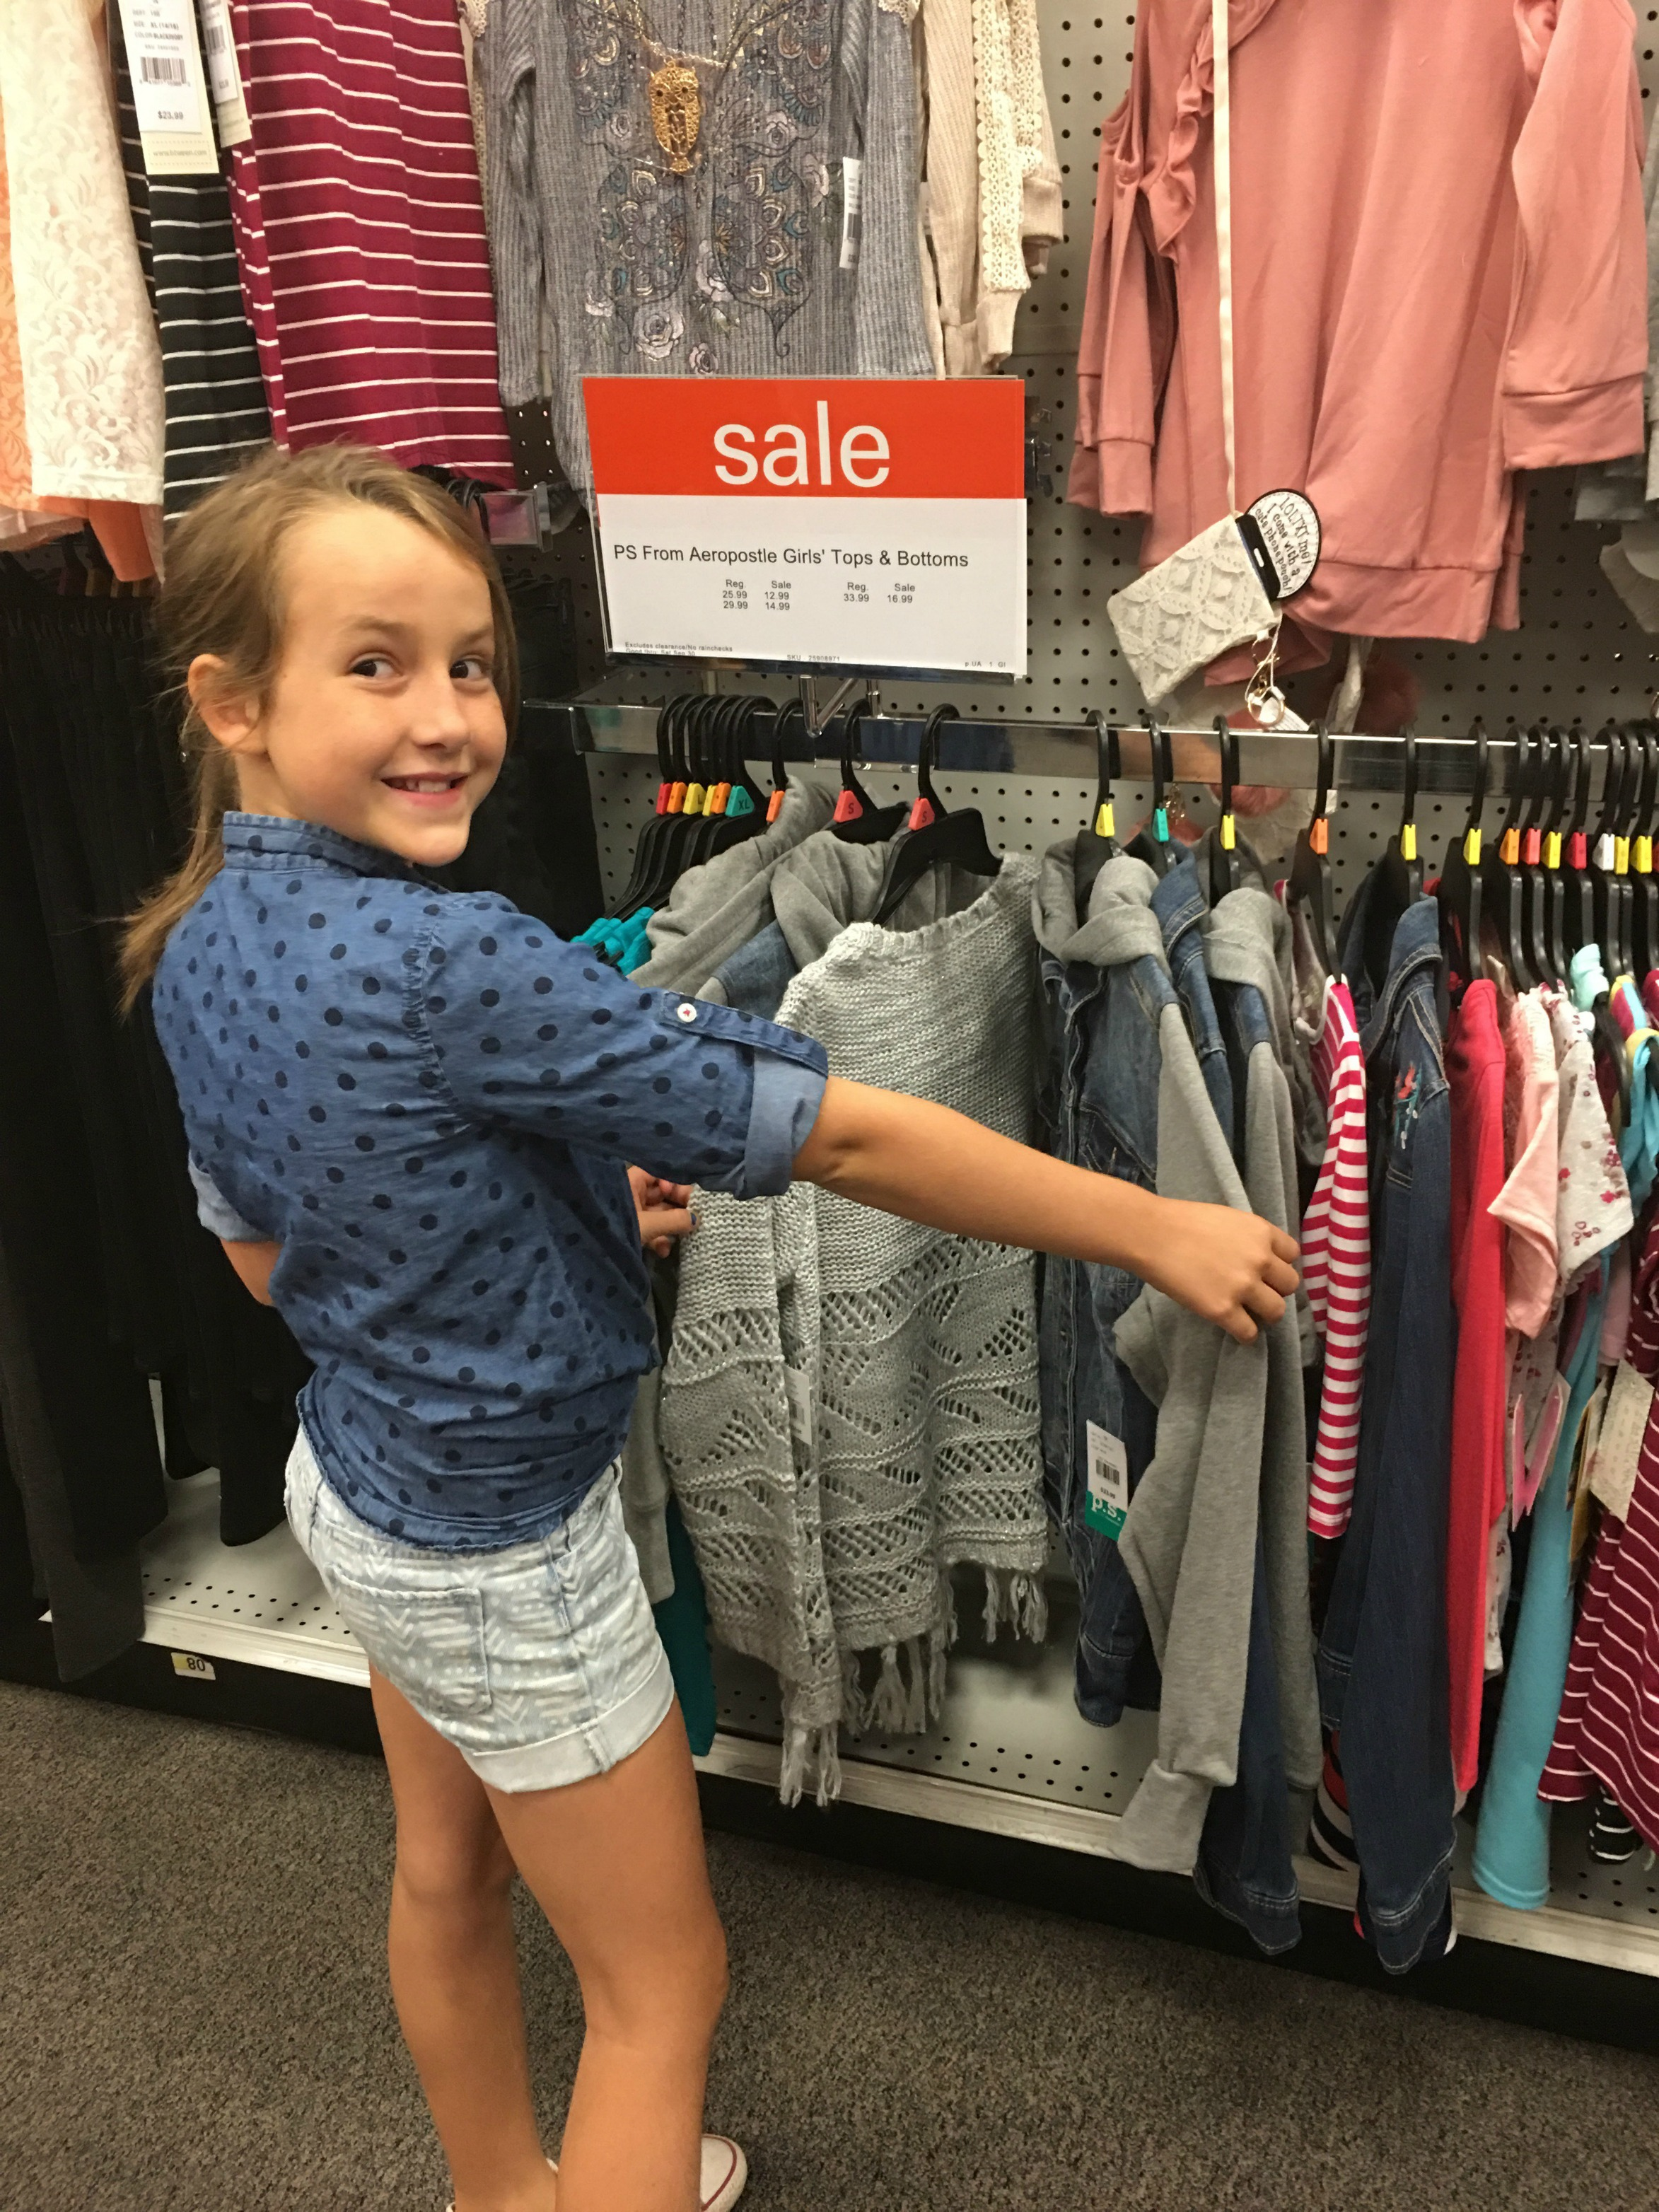 959ee70d3 New Kids Brands at Shopko - momma in flip flops